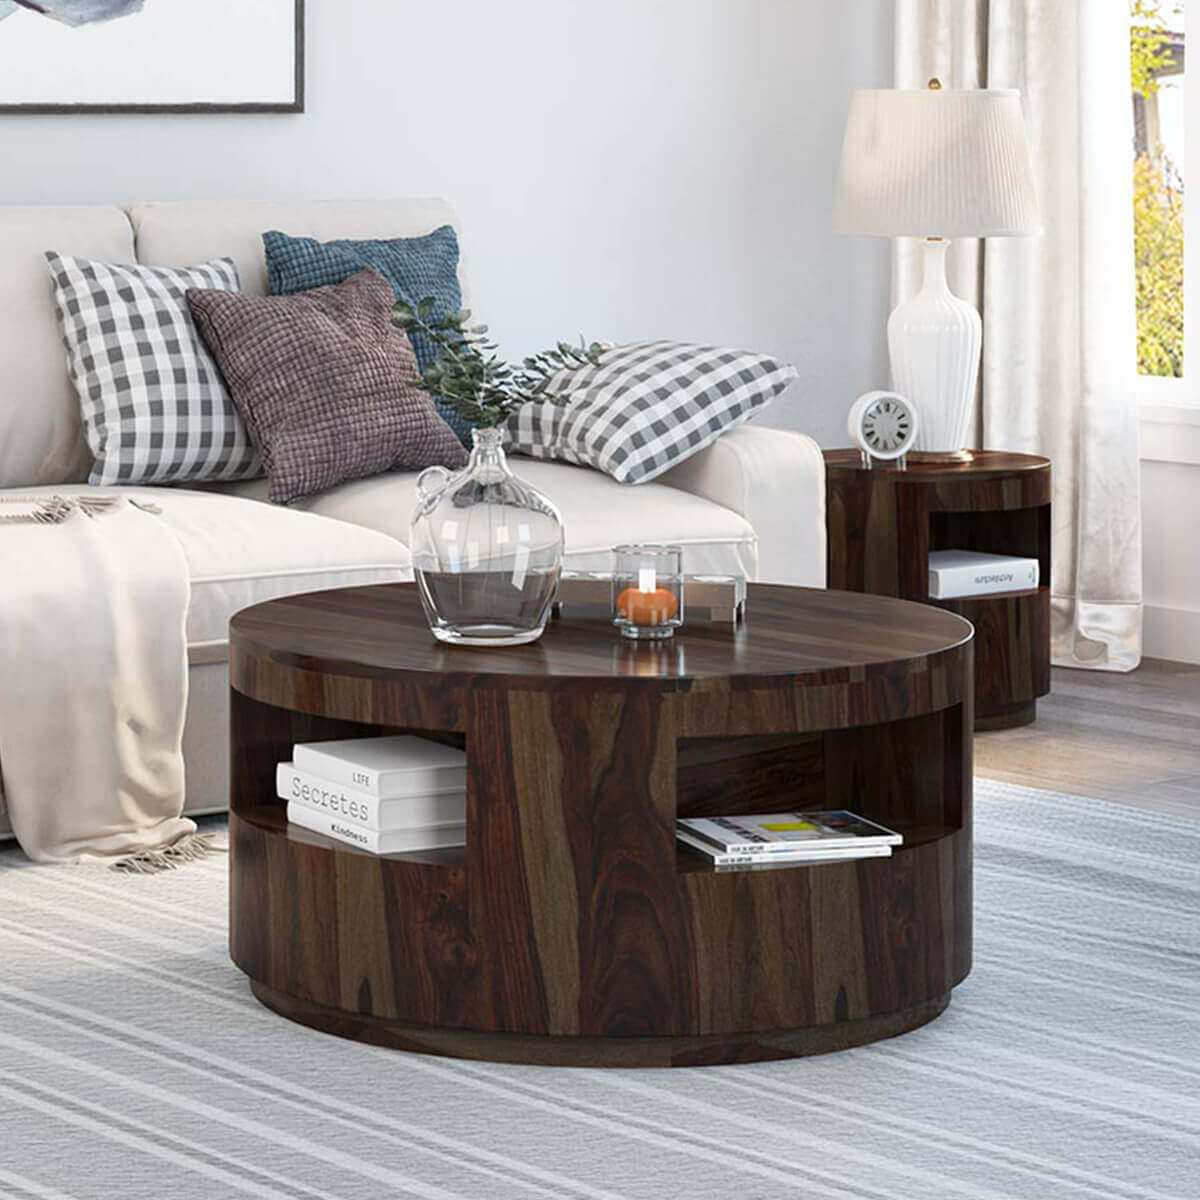 Ladonia Rustic Solid Wood Round Coffee Table